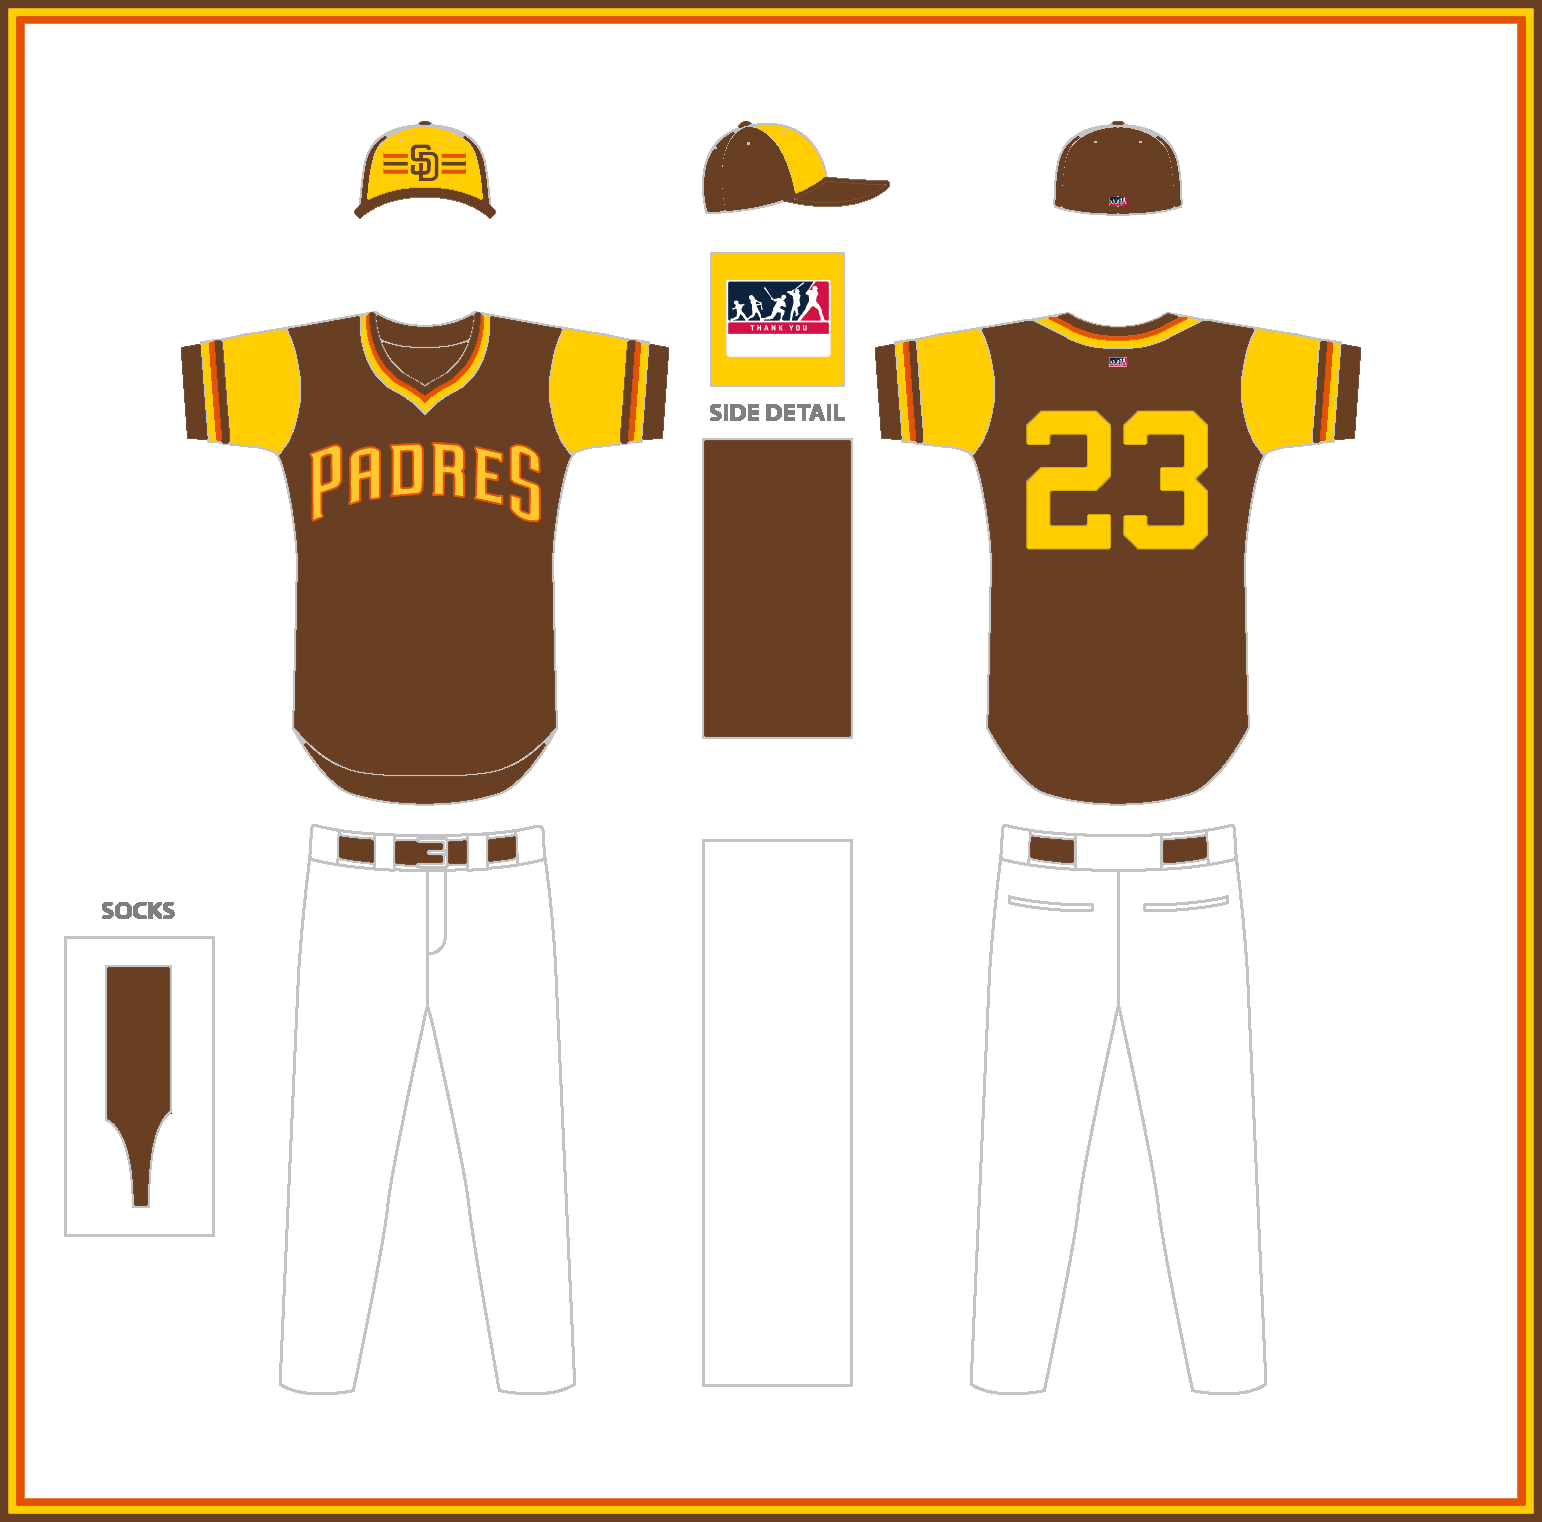 Padres_Players_Weekend_2_0.png